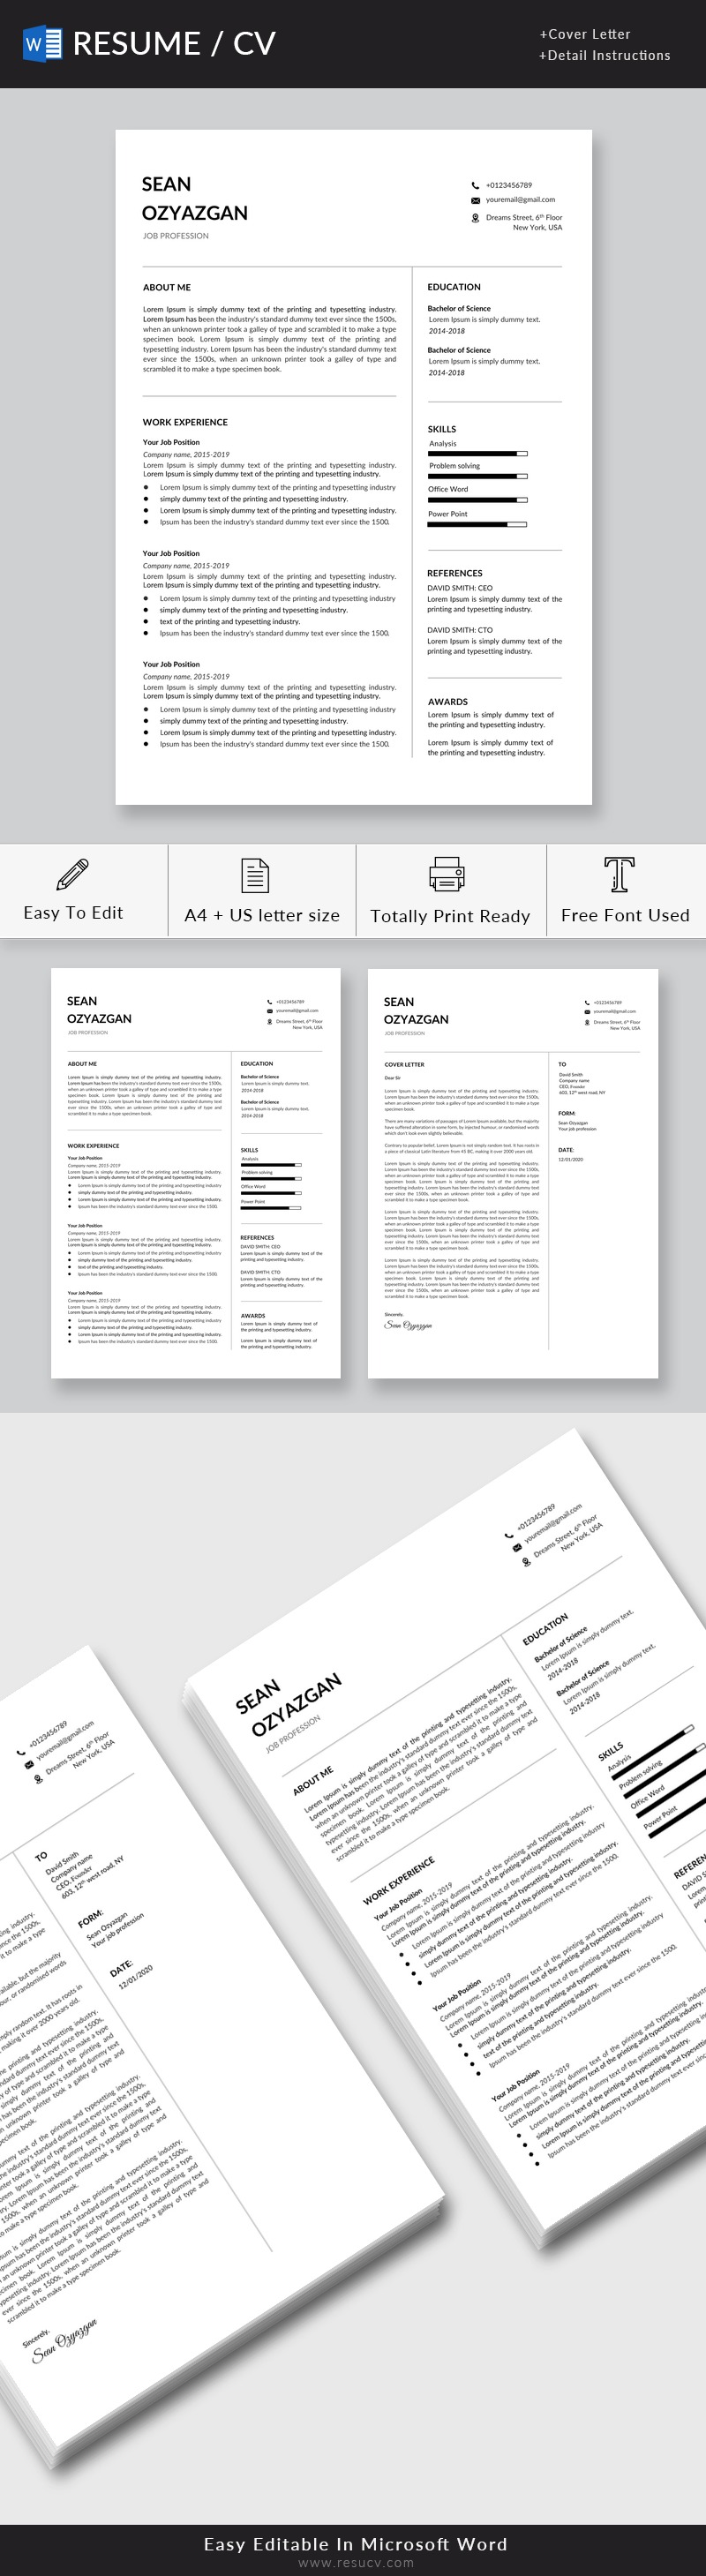 Professional Resume | Minimalist Resume Template Word | Cv Template, Marketing CV, Software Developer, Engineer